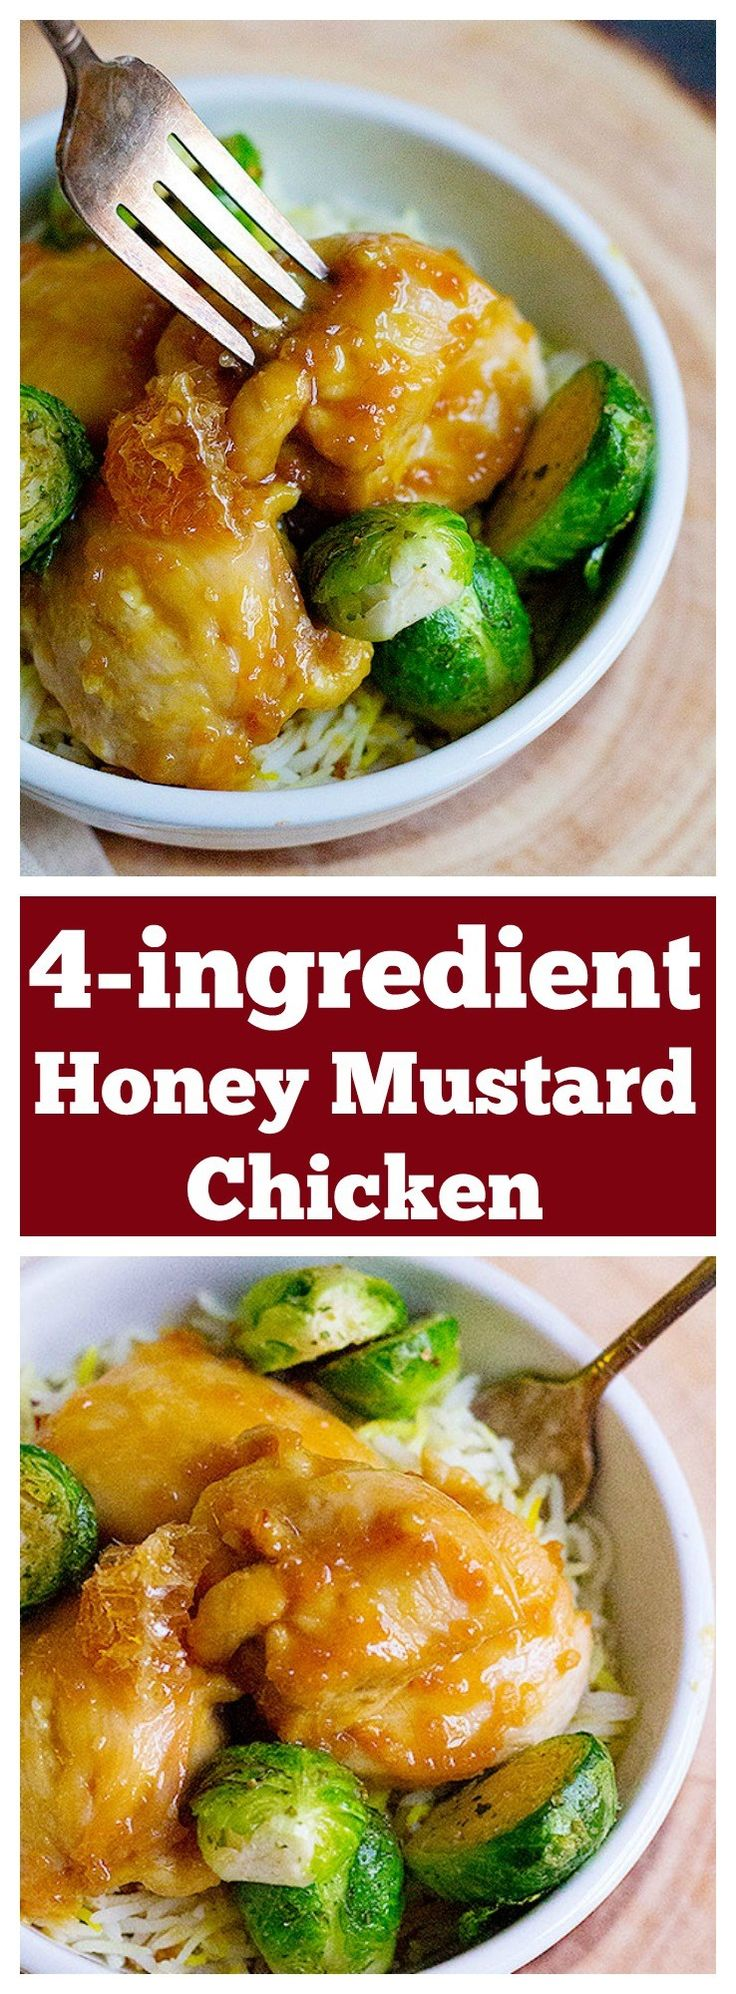 4-ingredient baked honey mustard chicken is so simple to make and much better than take out. Make this all time favorite dish at home.